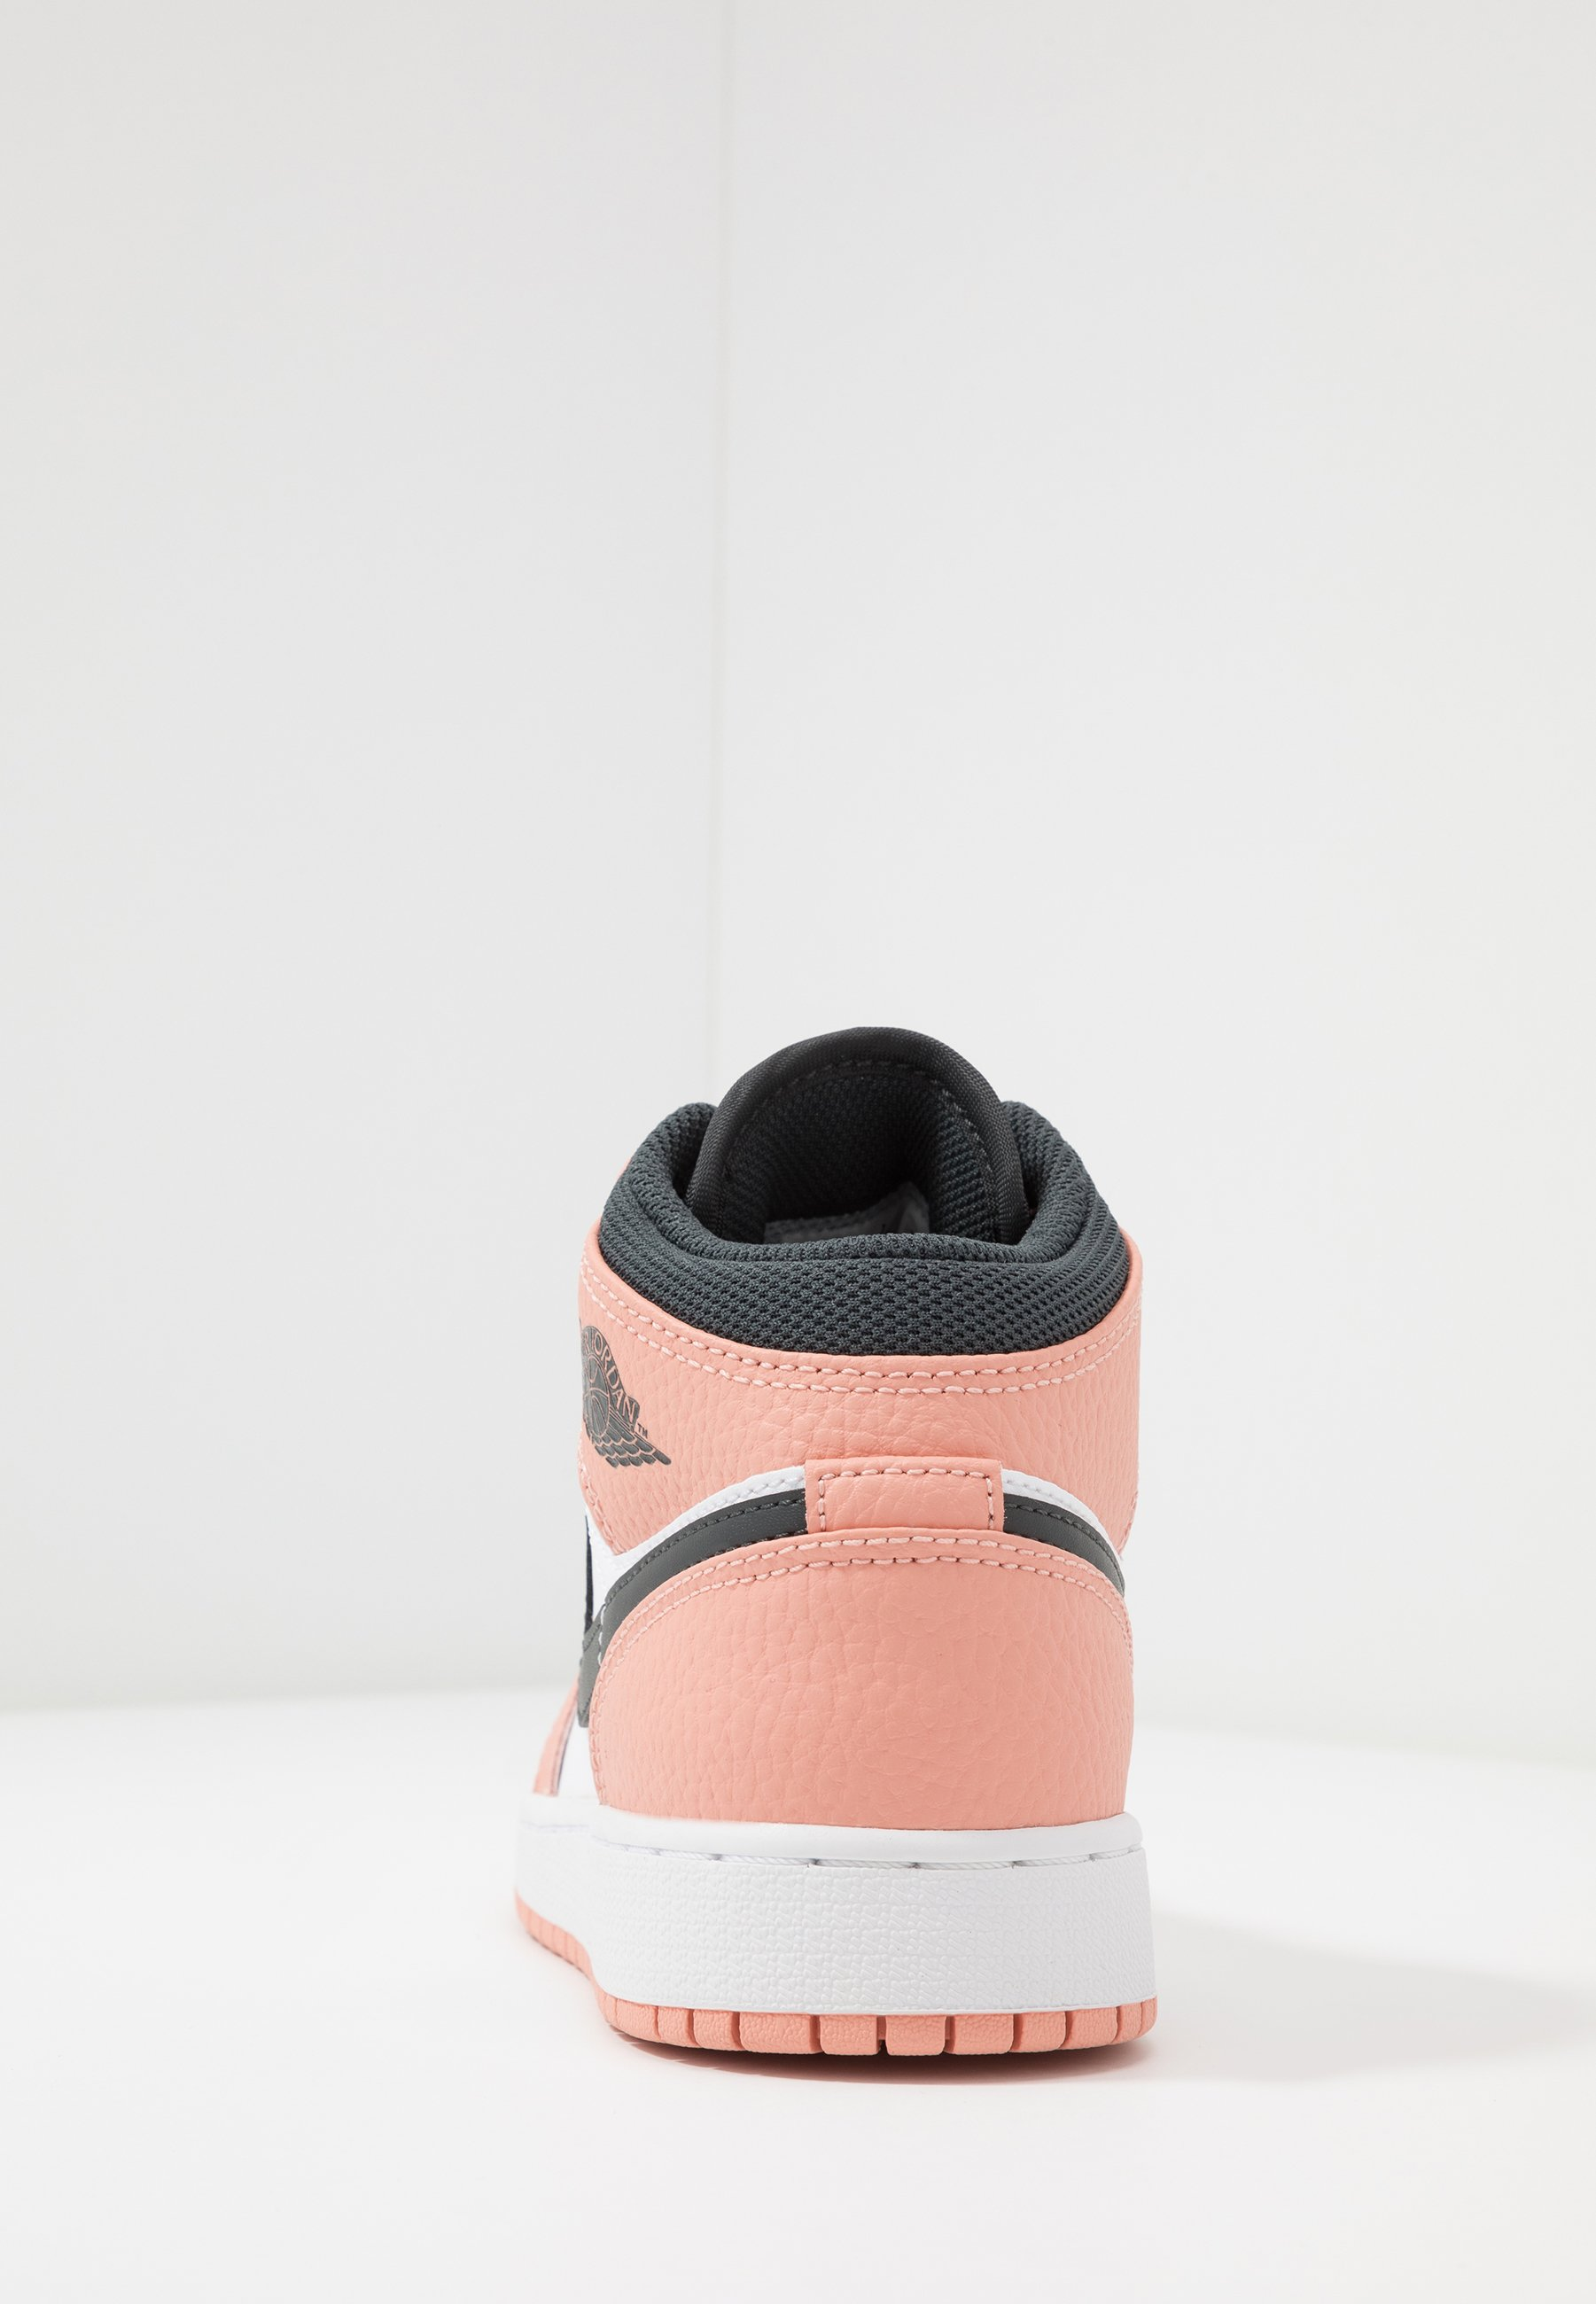 AIR 1 MID UNISEX - Basketball shoes - pink quartz/dark smoke grey/white